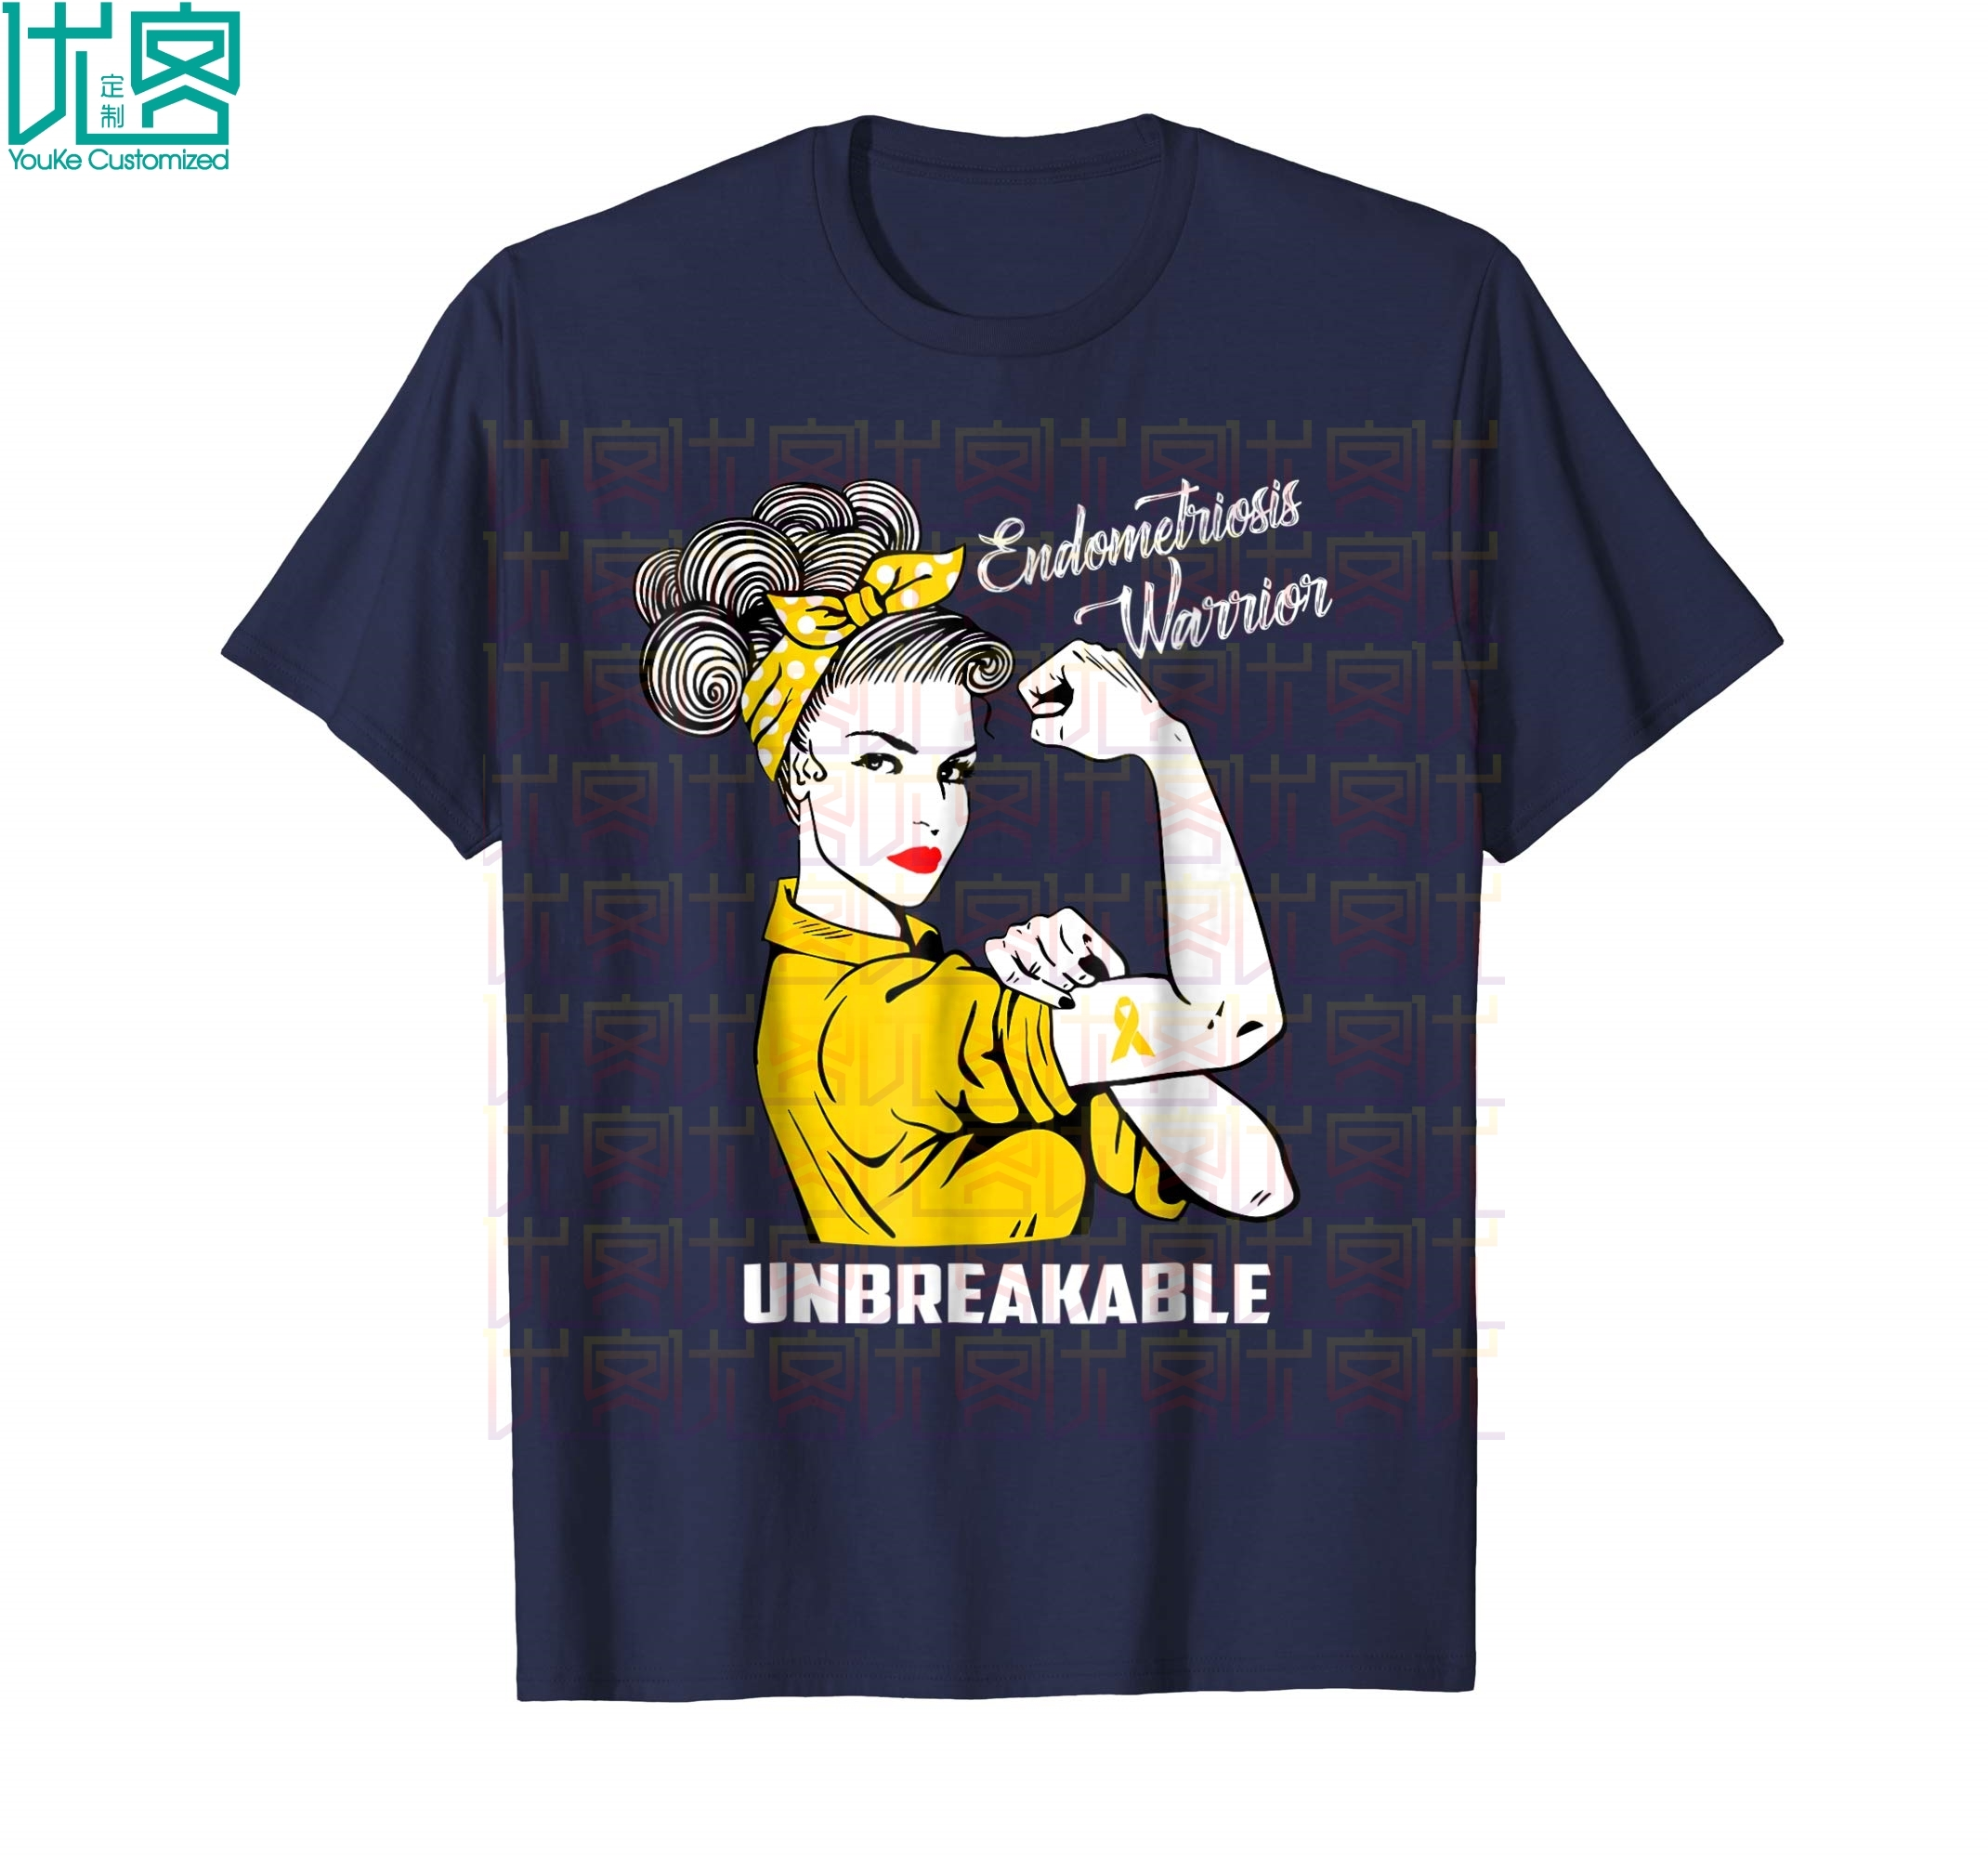 Endometriosis Warrior Unbreakable T Shirt Awareness Gift Amazing Short Sleeve Unique Casual Tees 100% Cotton Clothes T Shirt